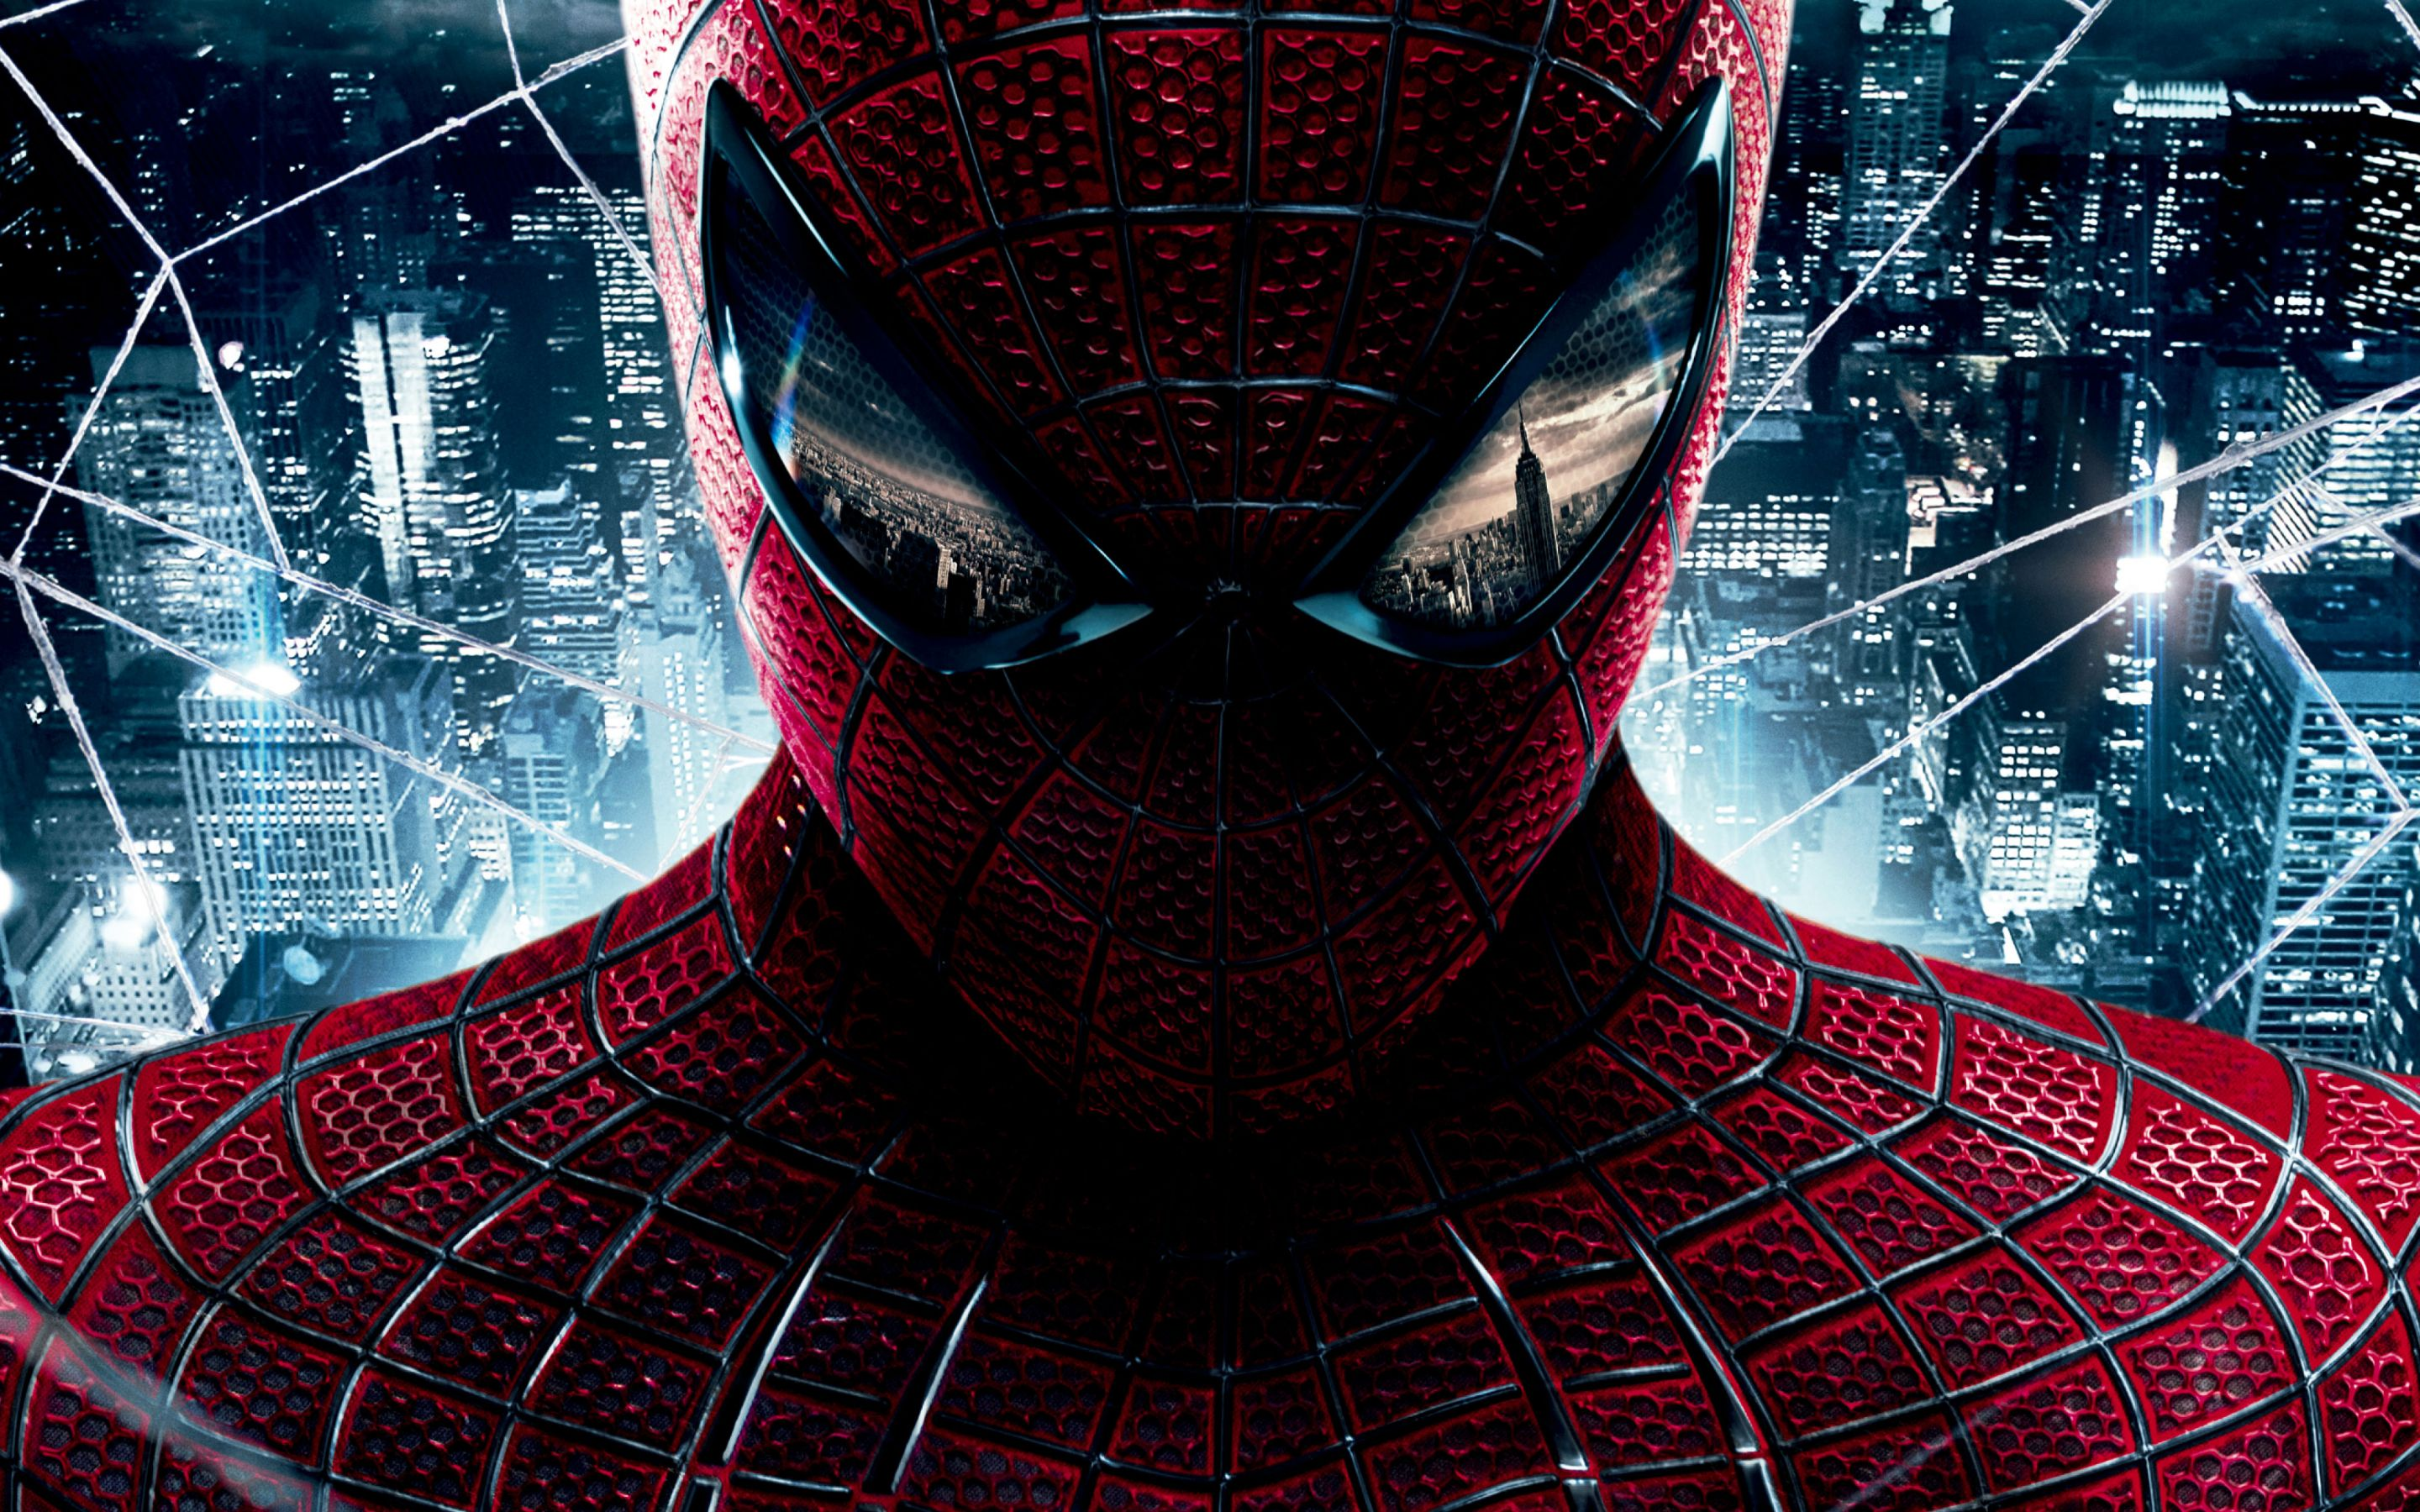 Spiderman s wallpaper | 2880x1800 | #8200